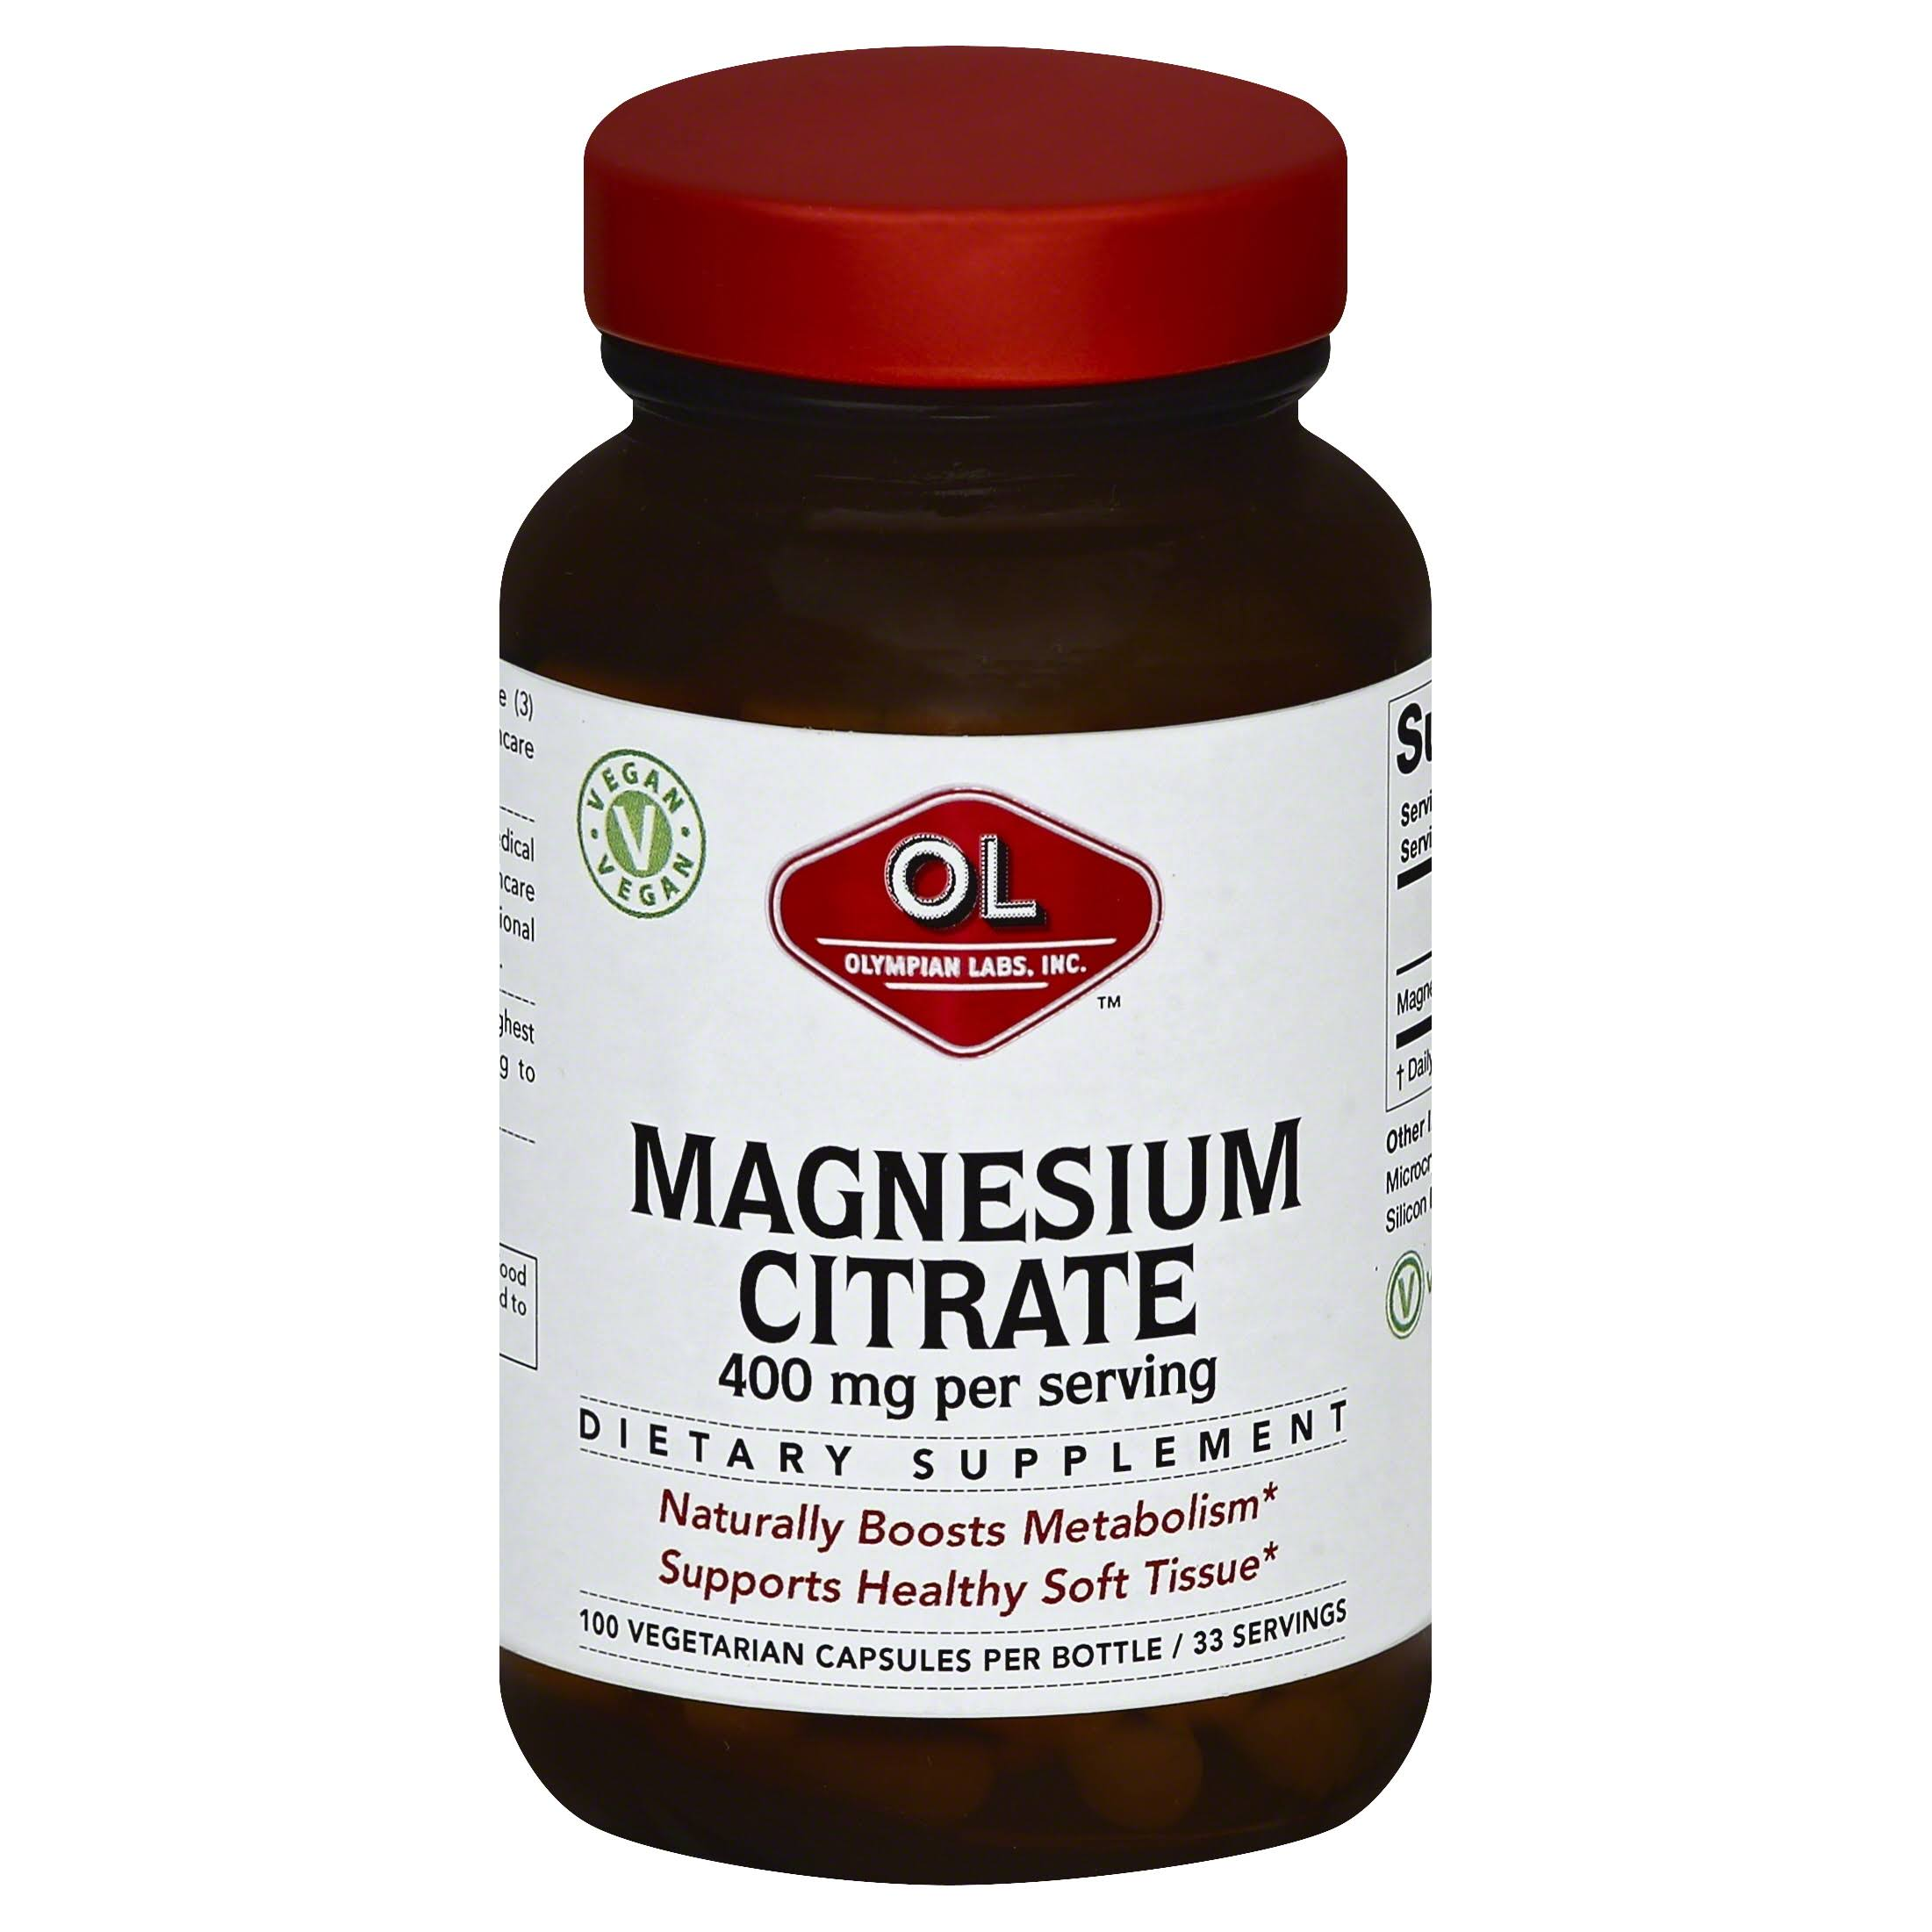 Olympian Labs Magnesium Citrate Supplement - 400mg, 100ct